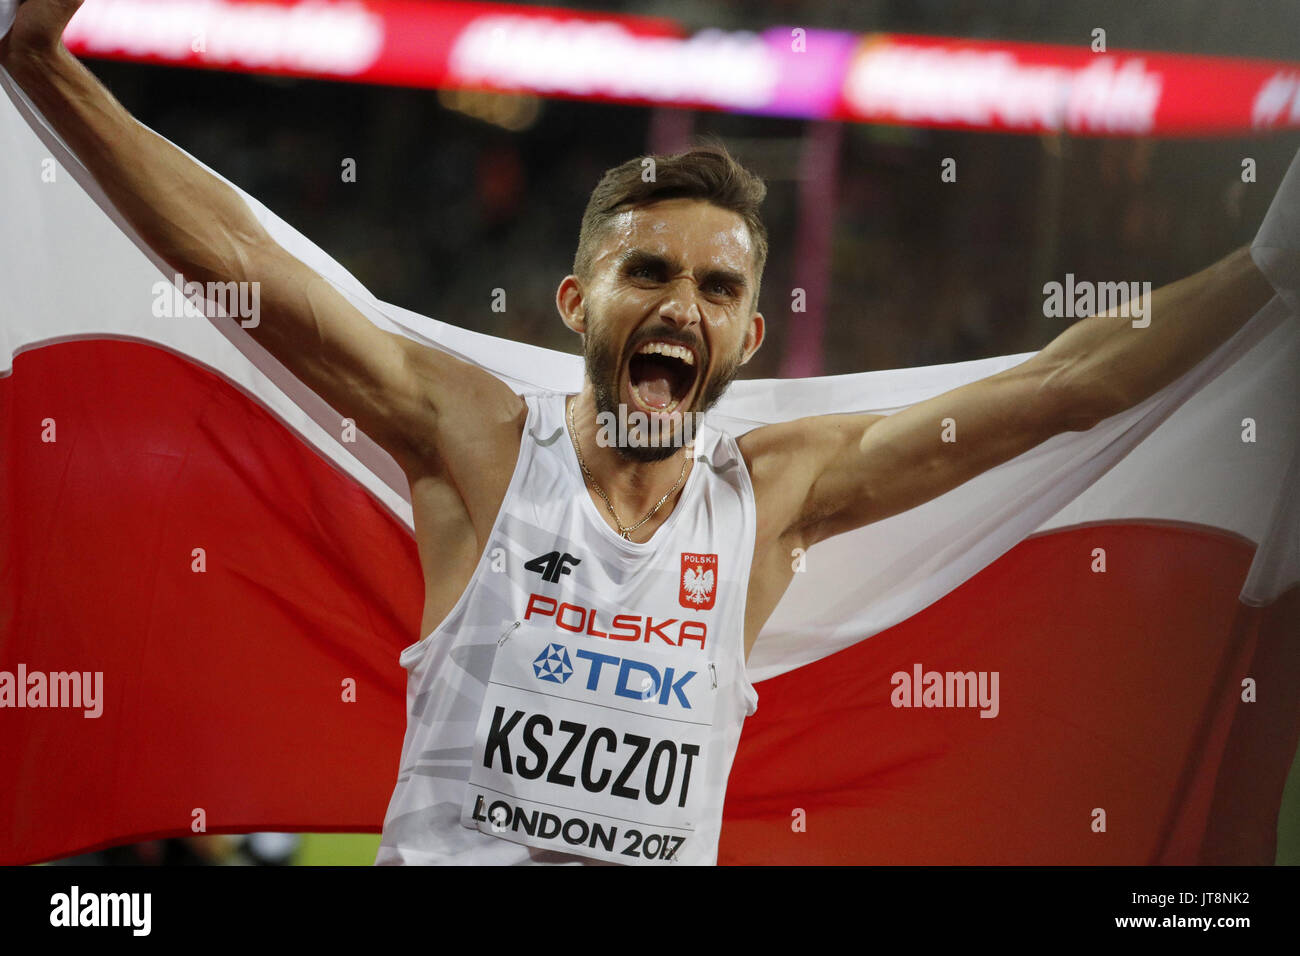 London, UK. 08th Aug, 2017. ***CORRECTS MEDAL*** Polish athlete Adam Kszczot jubilates the silver medal in the 800 meters final during the World Athletics Championships at the olympic stadium in London, United Kingdom, 08 August 2017. EFE/Lavandeira jr./Alamy Live News - Stock Image